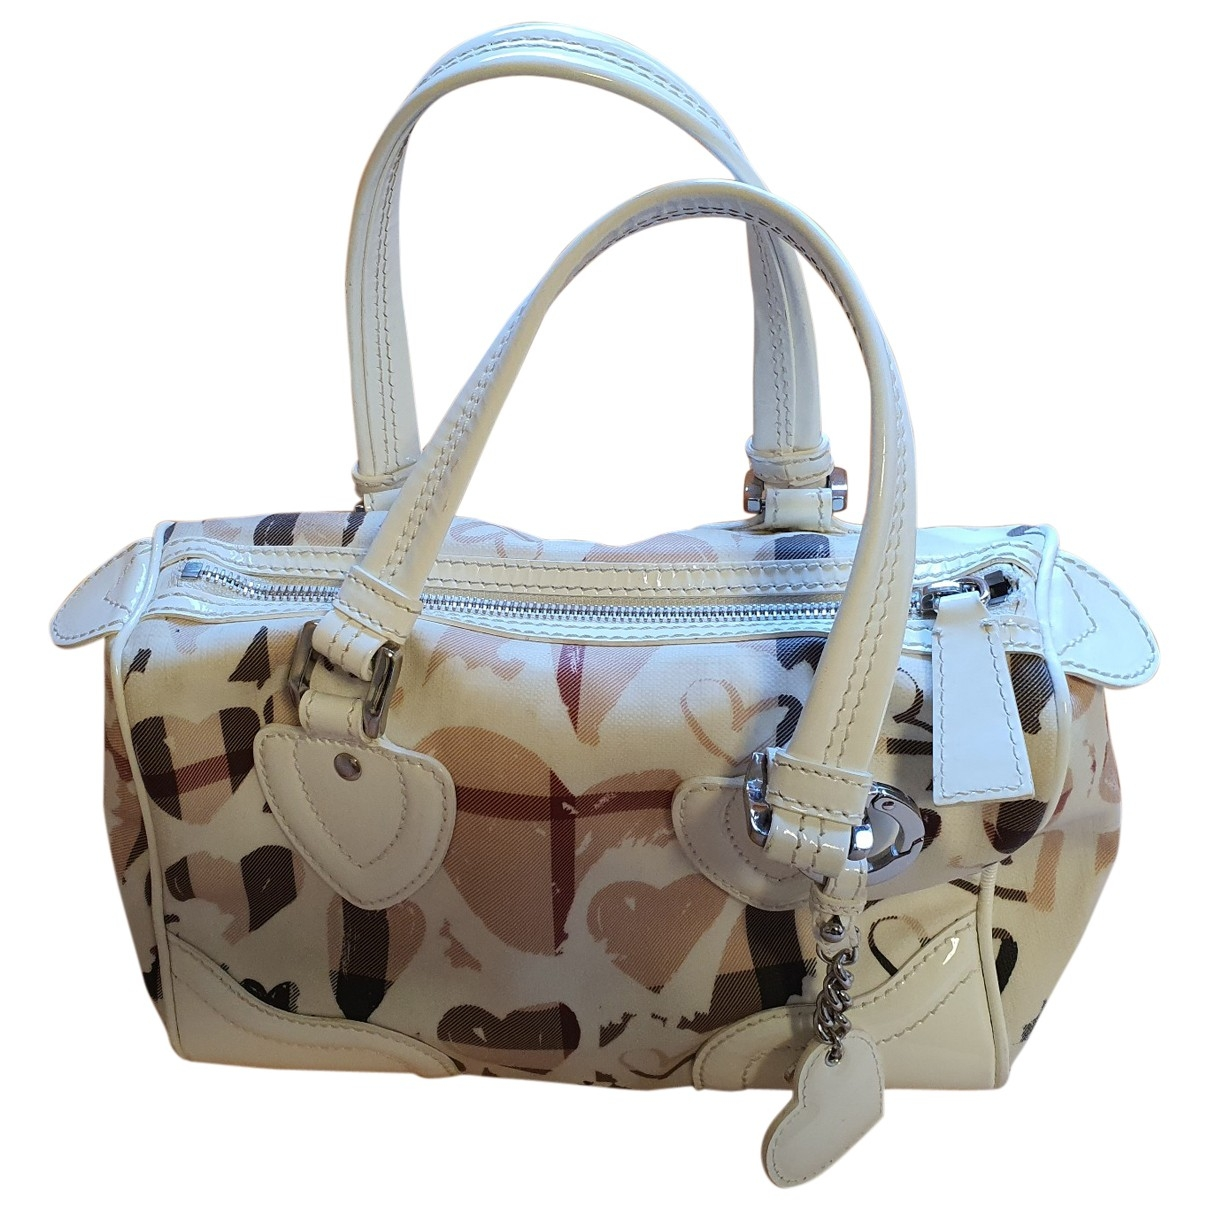 Burberry \N Multicolour Patent leather handbag for Women \N